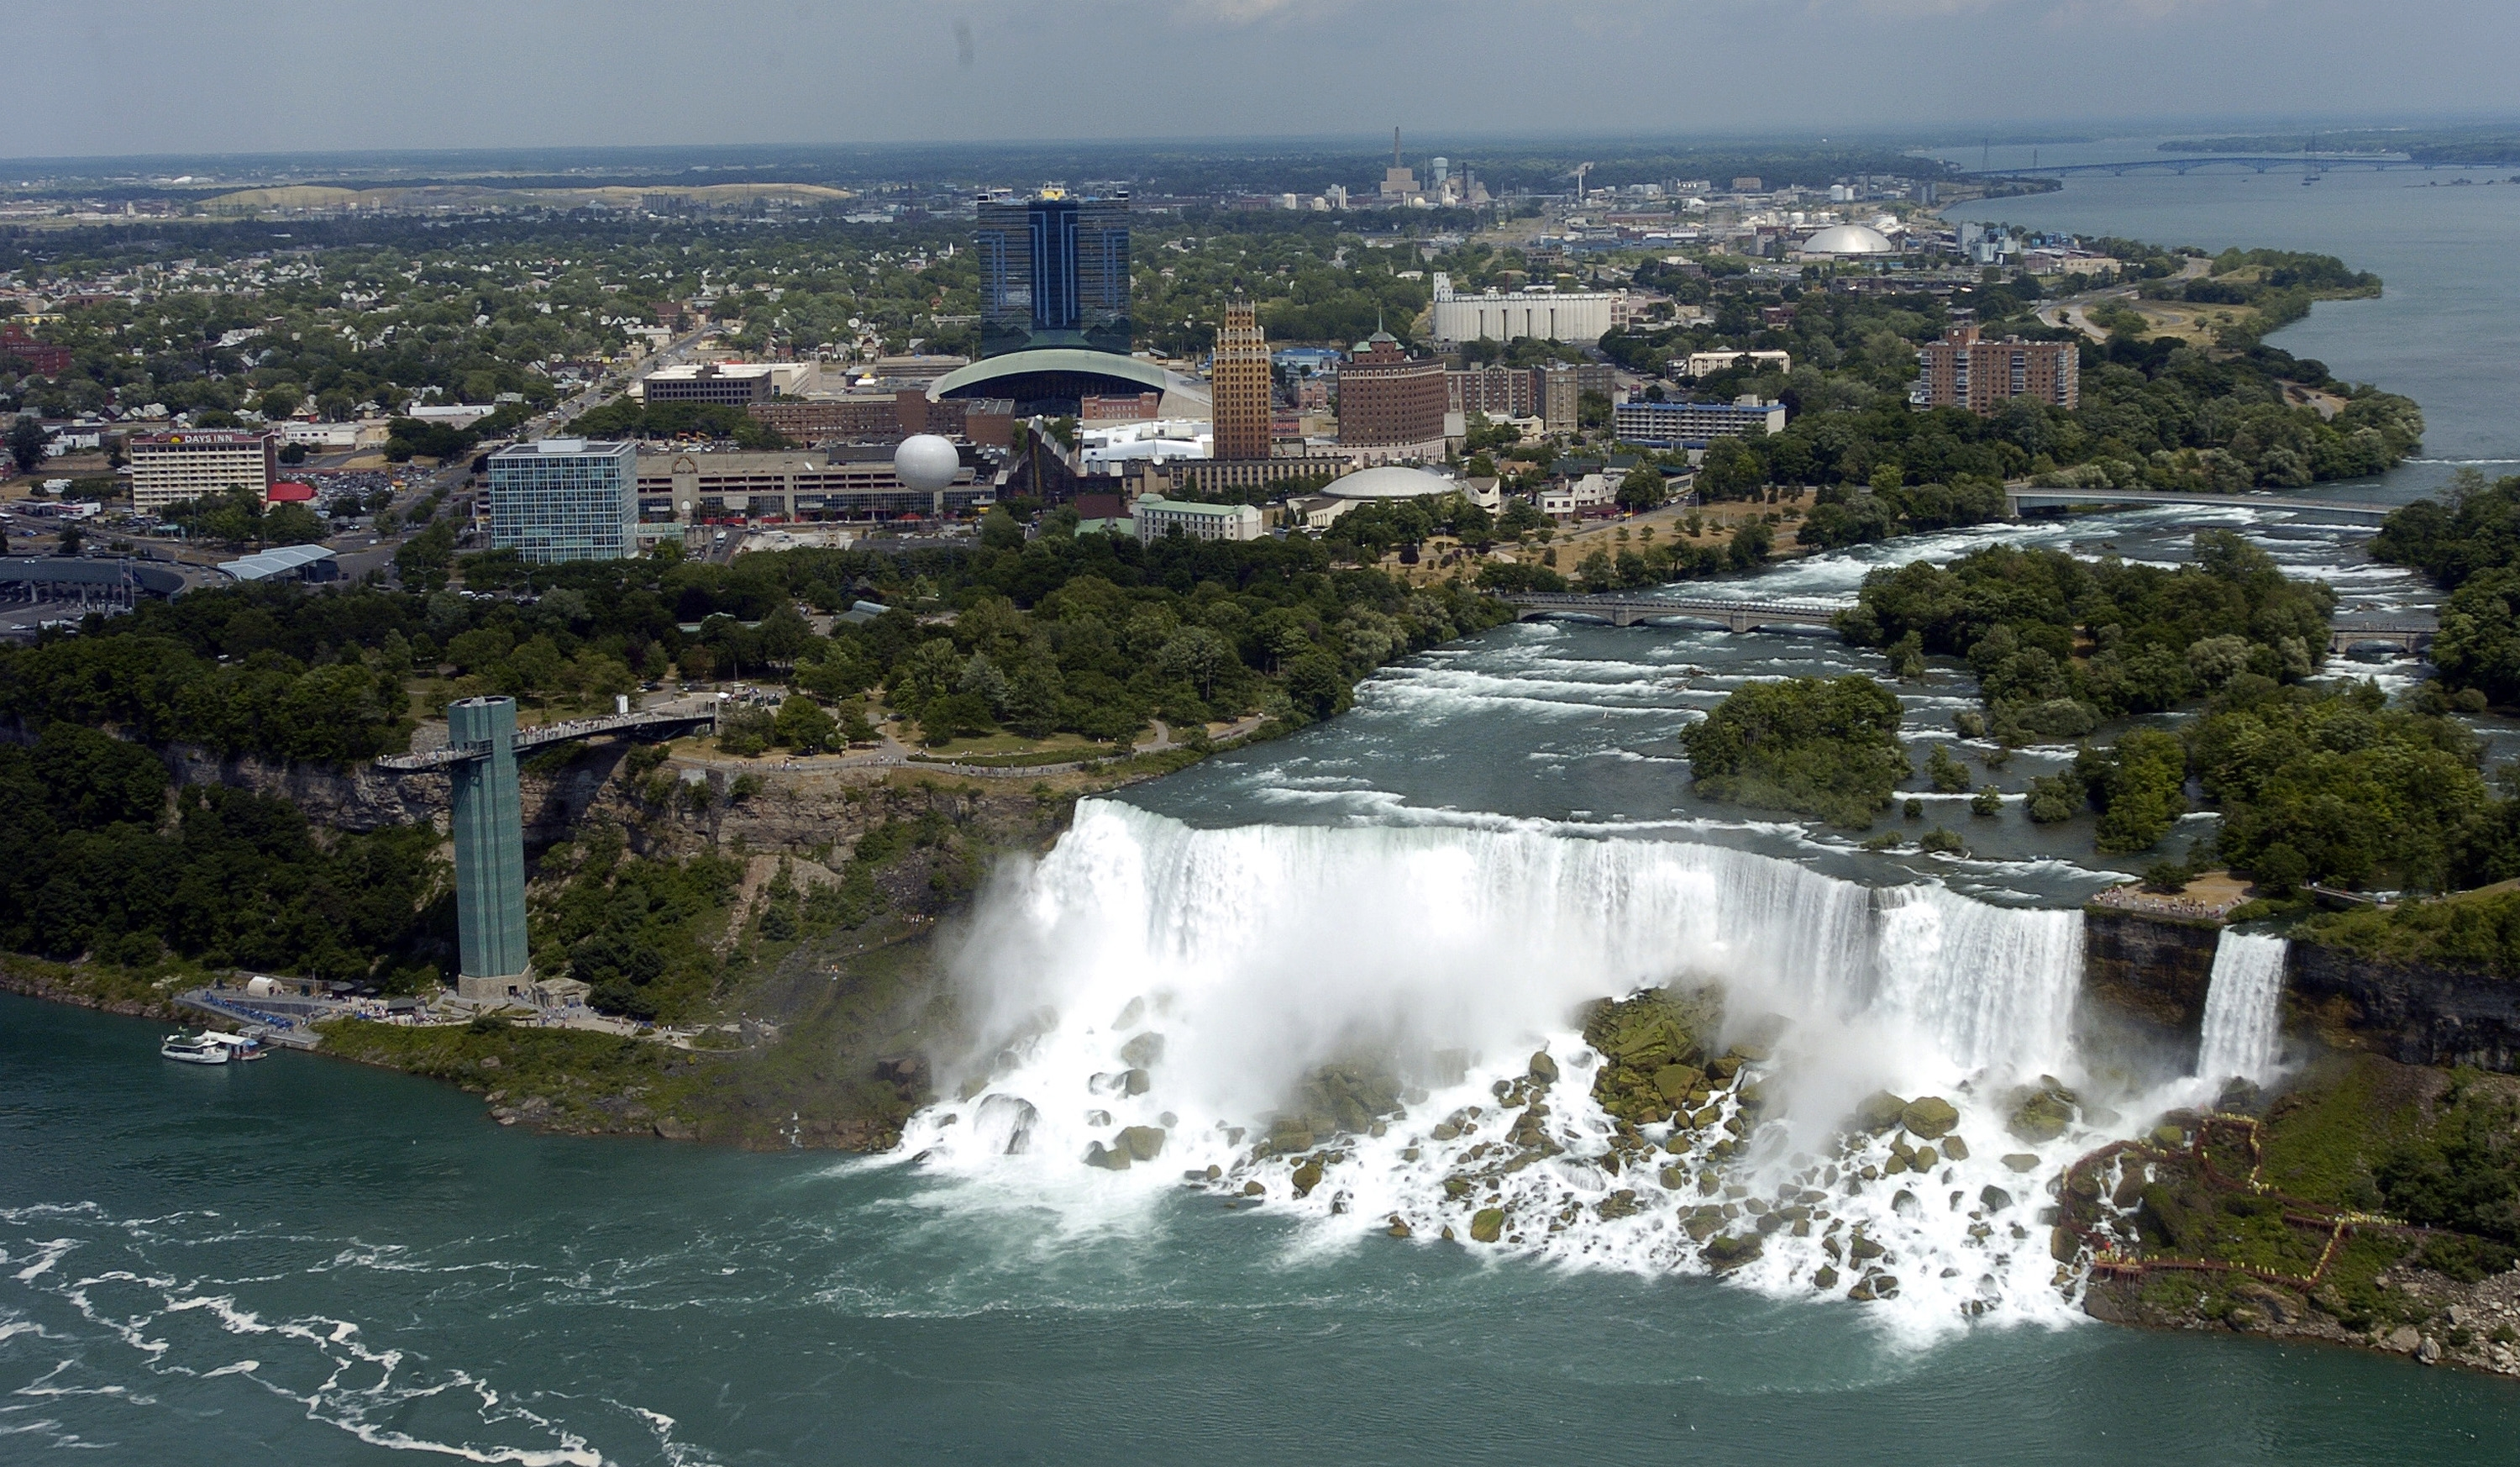 A view of Niagara Falls, N.Y.,  from the Skylon Tower in Niagara Falls, Ont.  (Harry Scull Jr./News file photo)